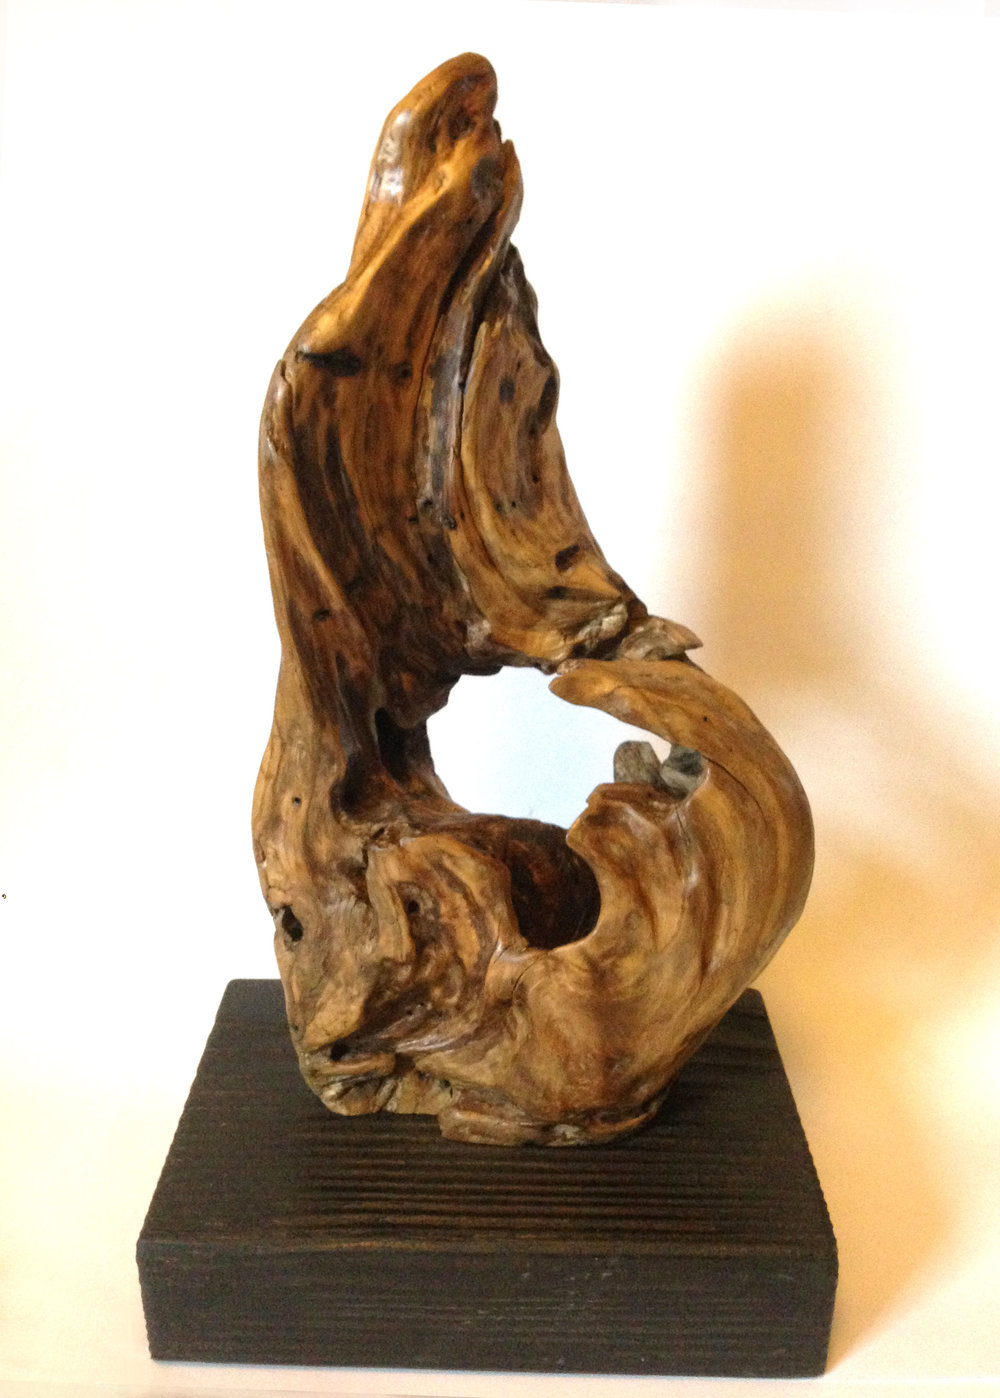 Kalalau - Driftwood sculpture from a remote Hawaiian beach deep into the Kalalau hiking trail. Sold.